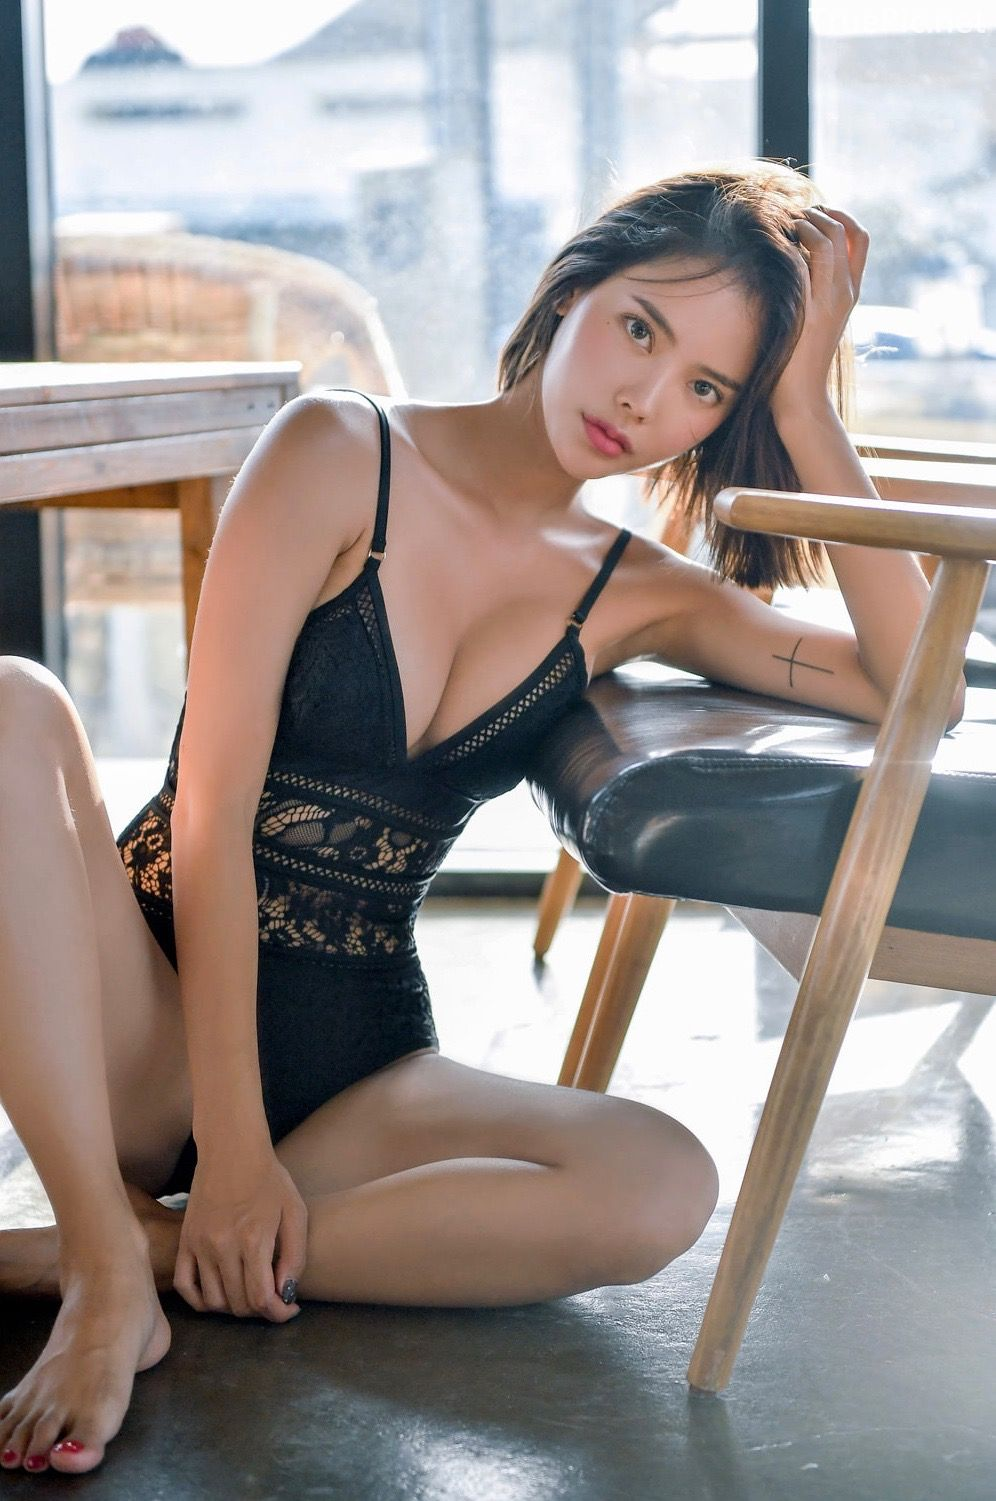 Korean hot model and fashion - Song Yi - Black and White Swimsuit for Summer Vacation - Picture 3